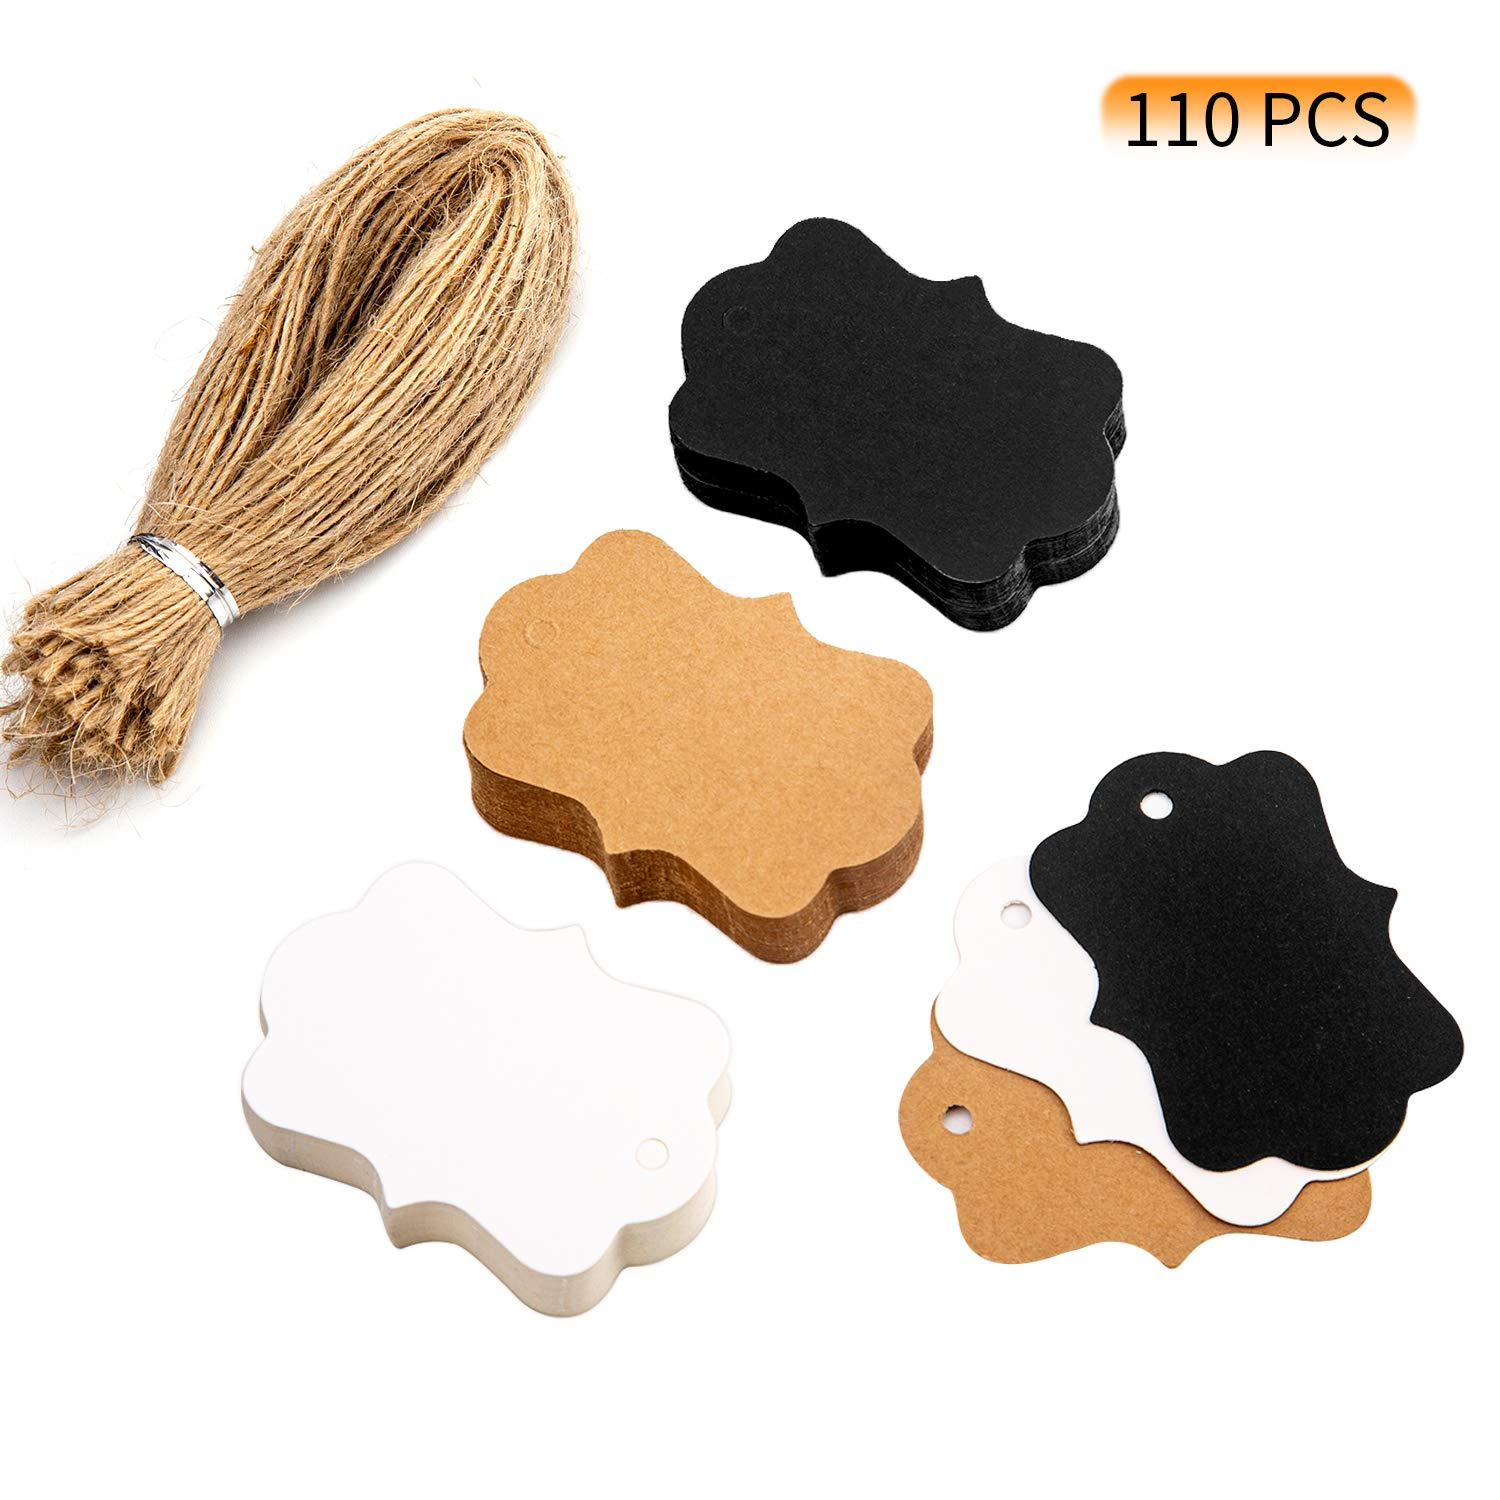 AIEX 110 PCS Kraft Paper Tags Blank Gift Tags with 120 PCS Natural Jute Twine for DIY Craft and Wedding Party Favors